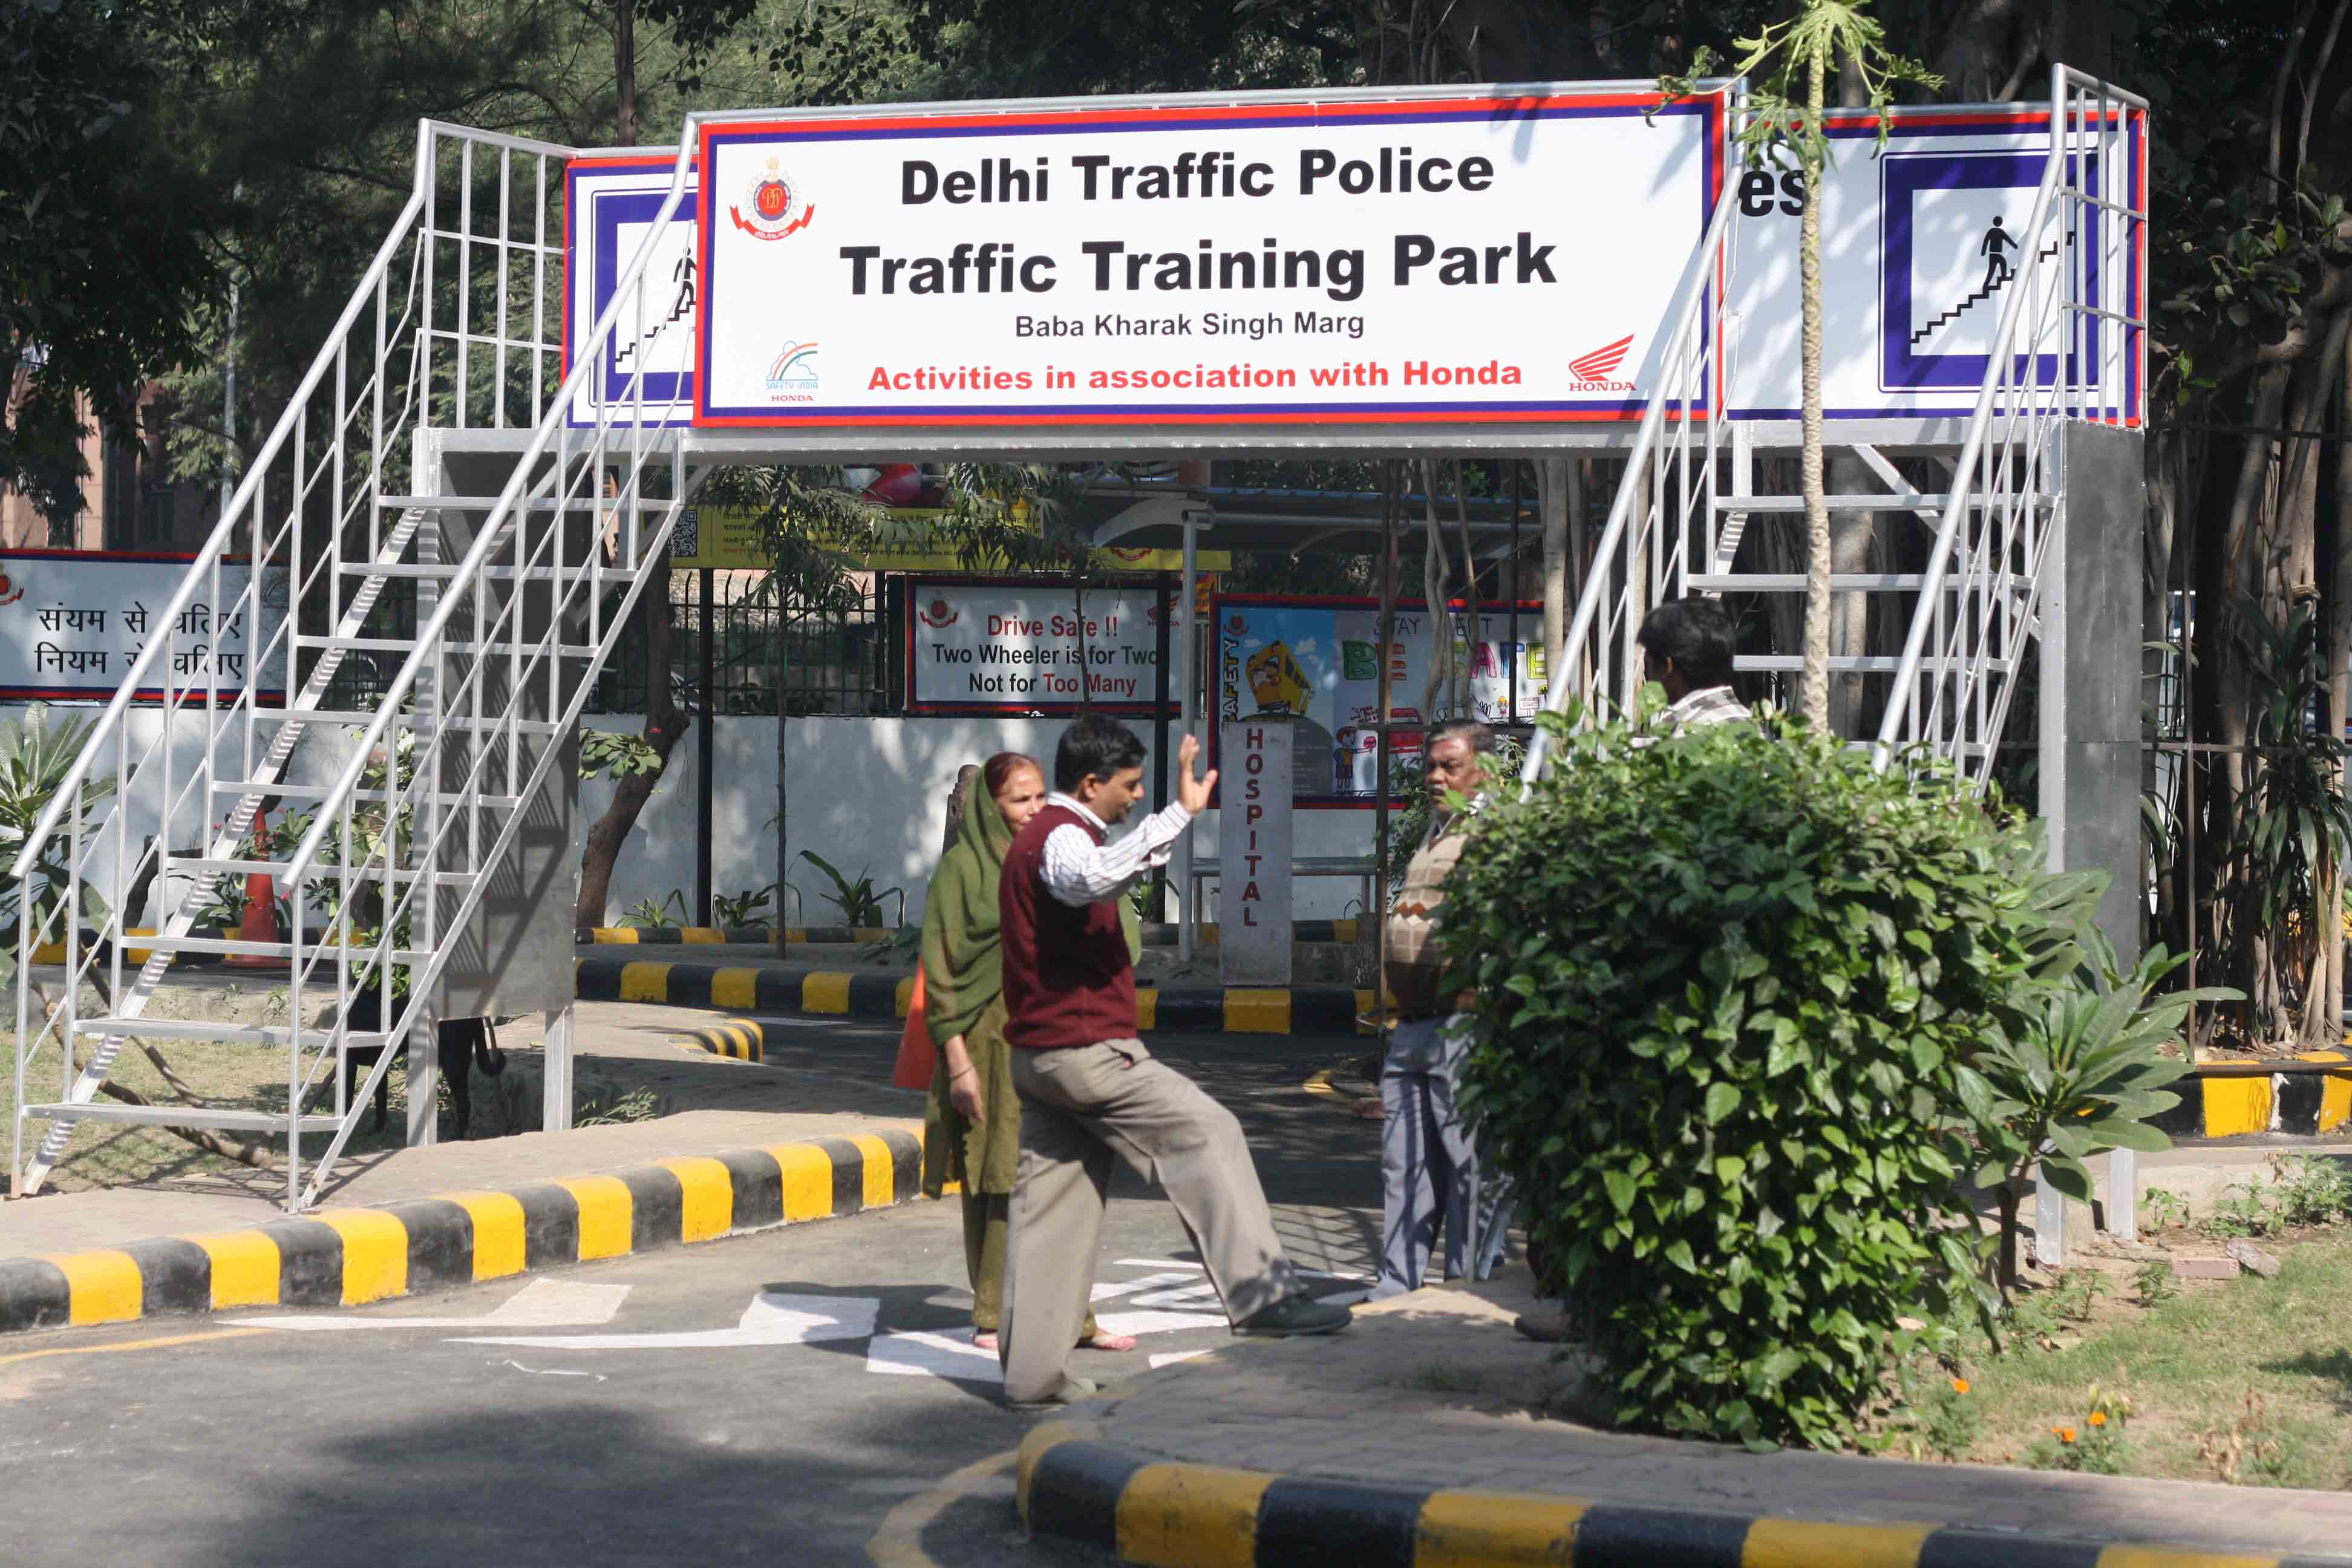 City Hangout - Traffic Training Park, Baba Kharak Singh Marg